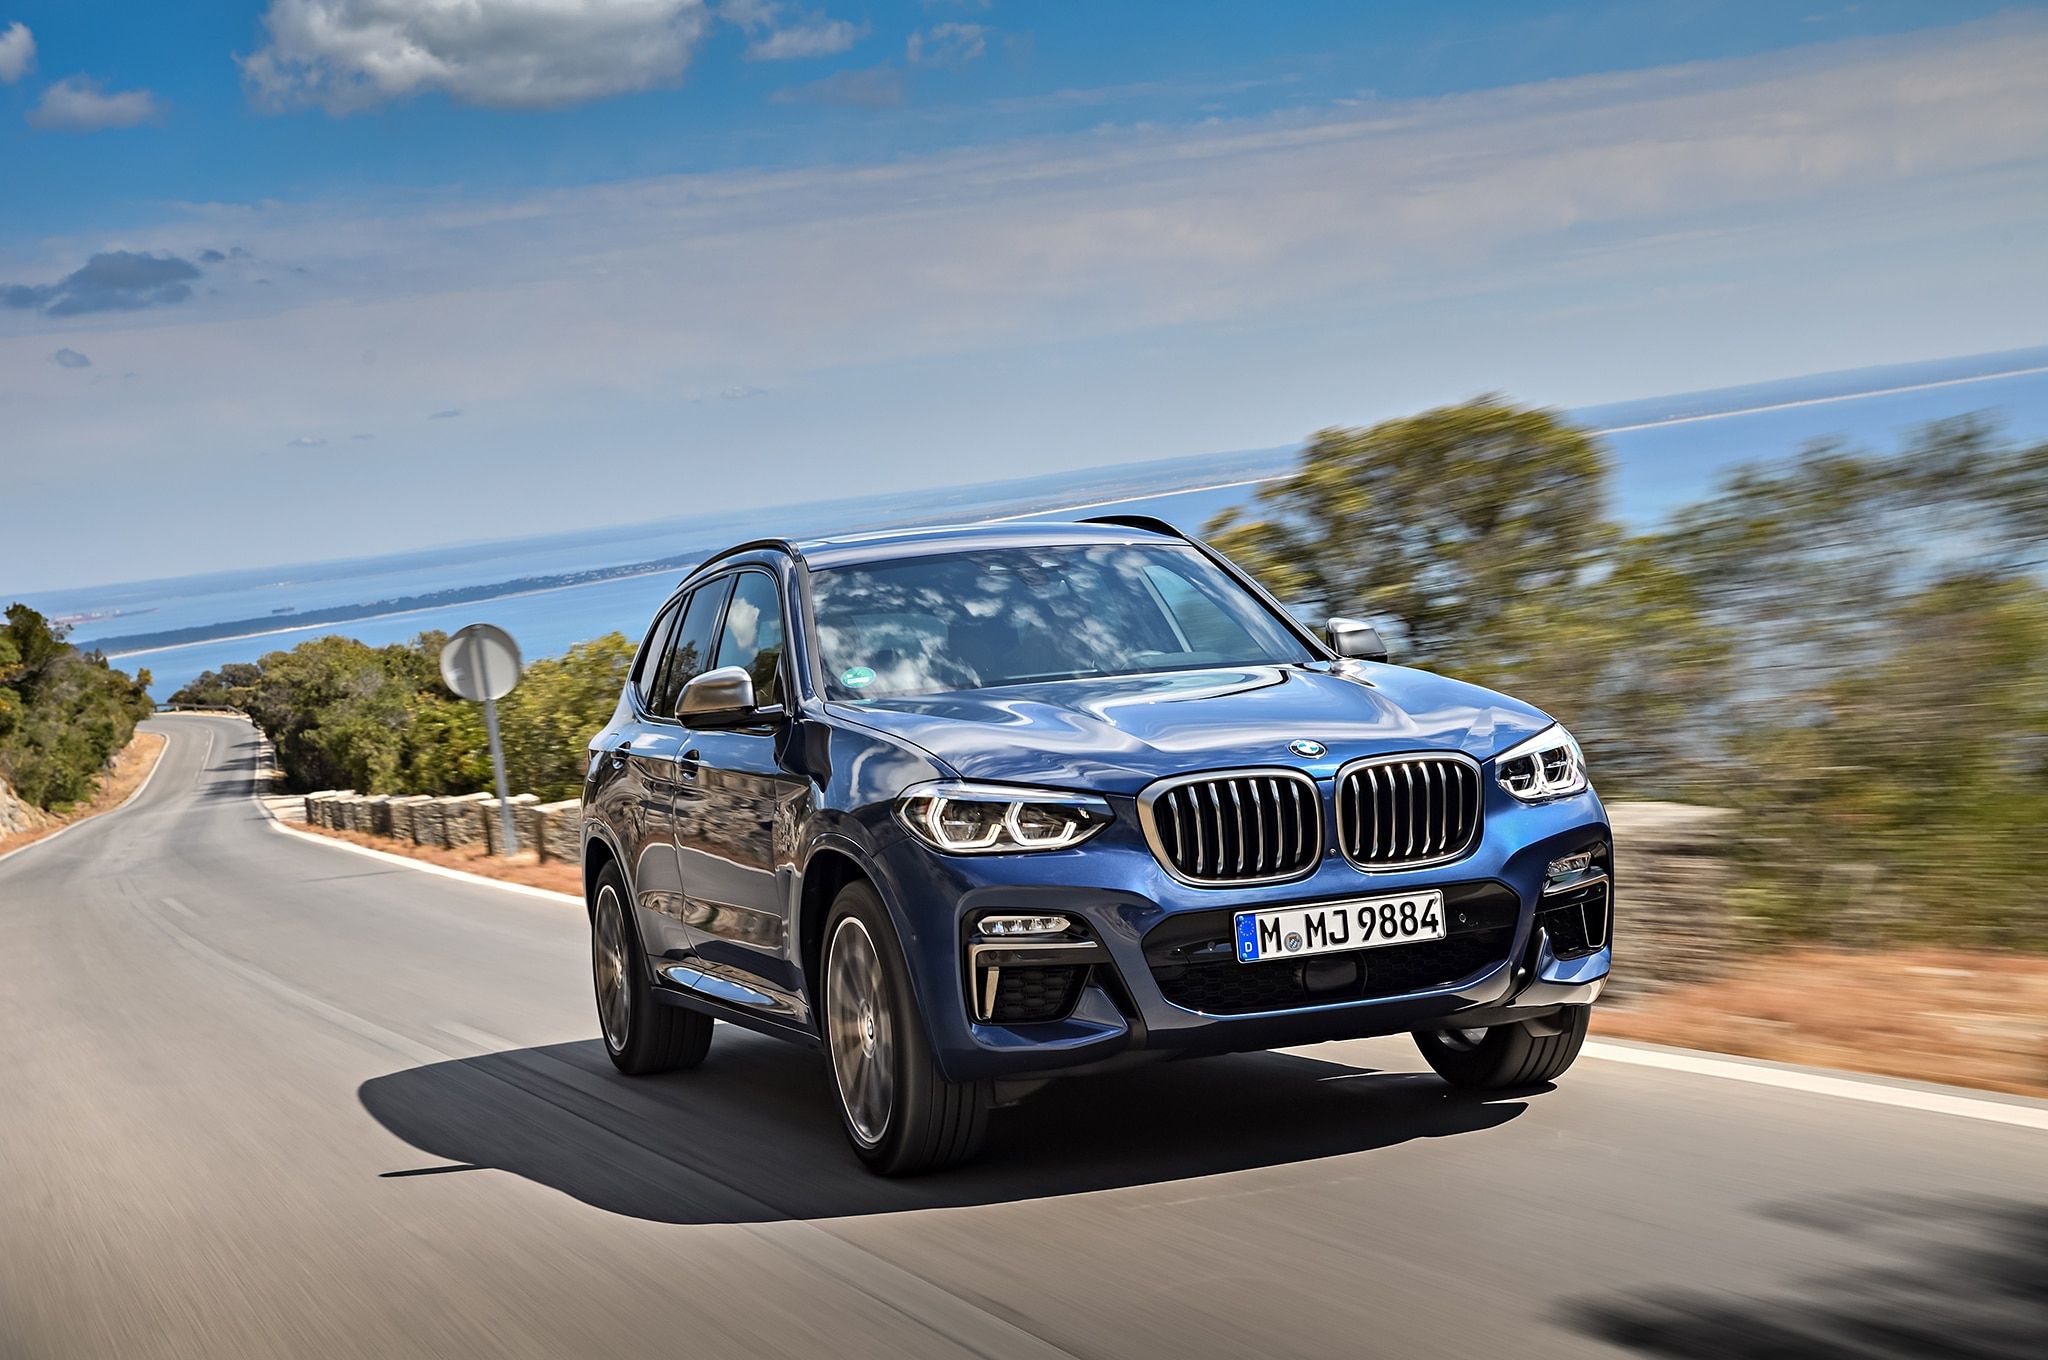 2018 Bmw X3 Almost Ready For The Big Mall Crawl Automobile Magazine